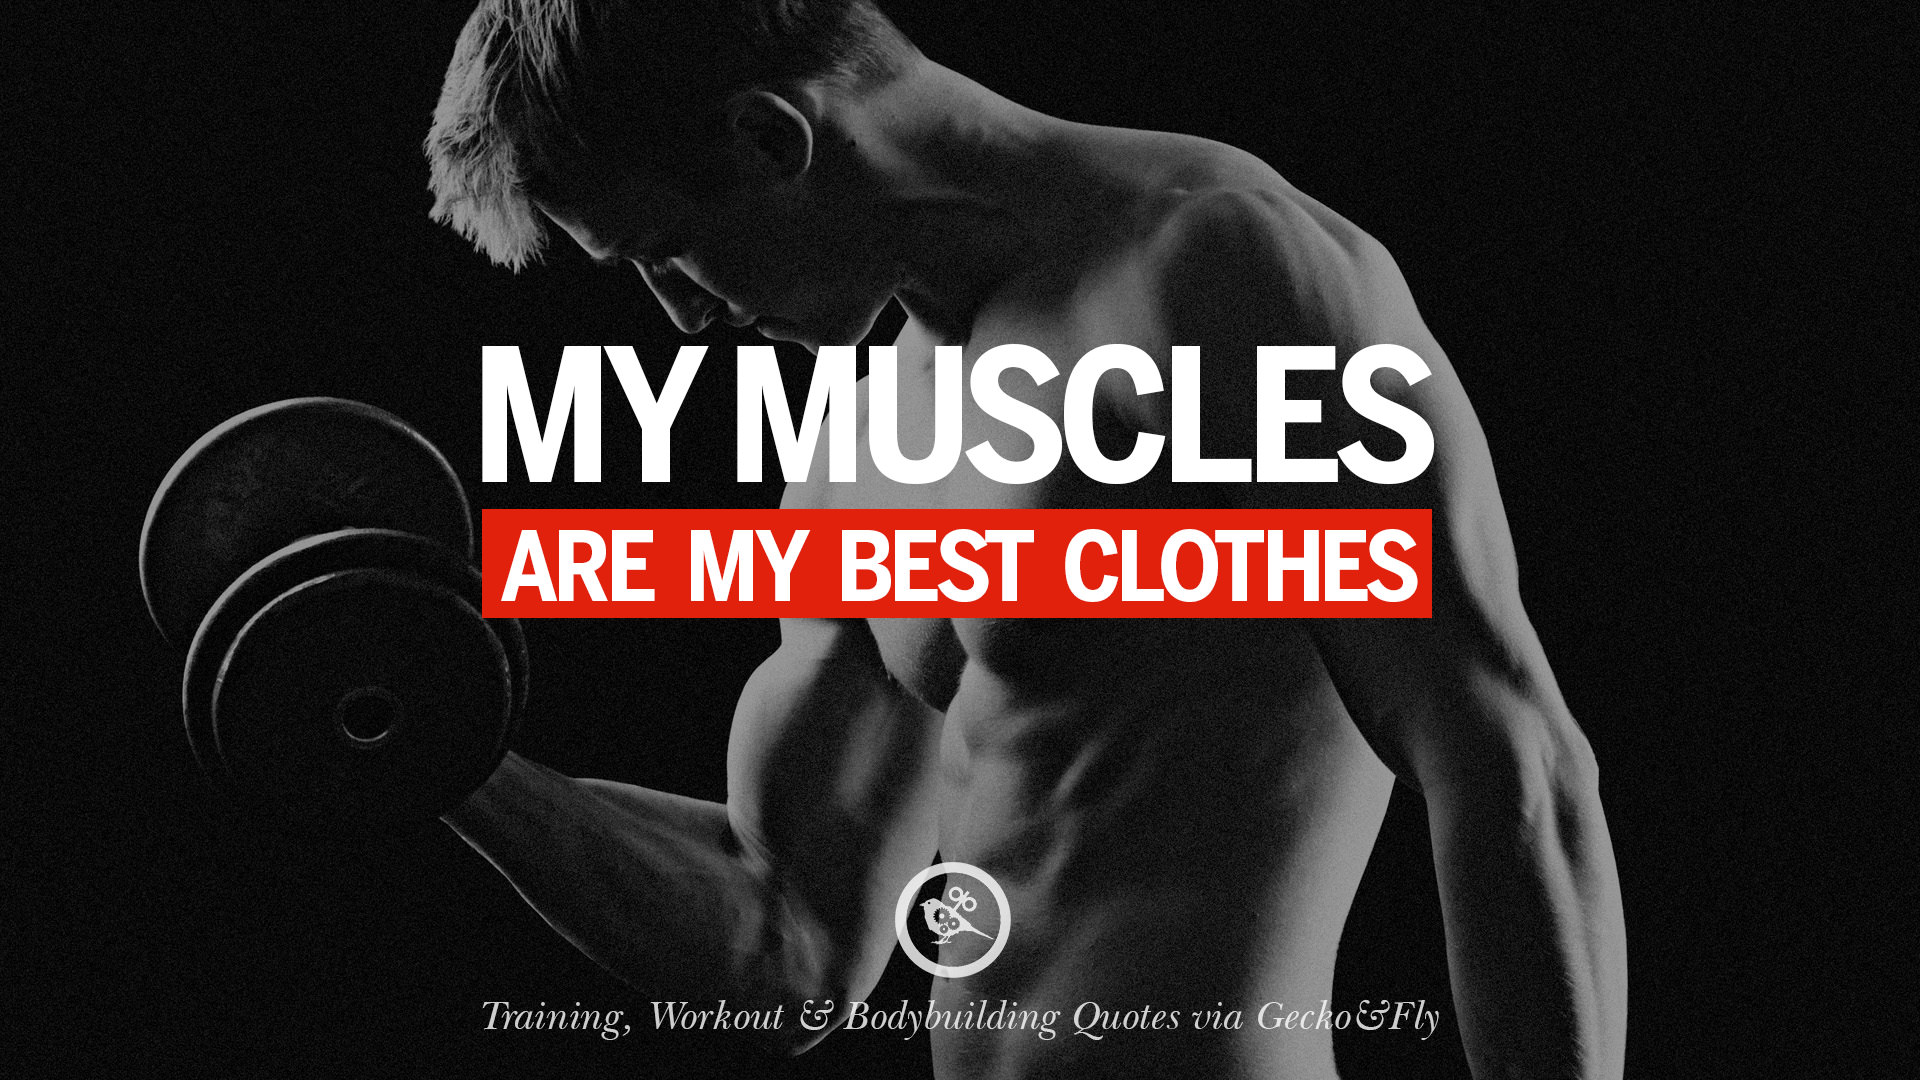 Hustle Quotes Wallpaper 10 Muscle Boosting Quotes For Workout Amp Bodybuilding Gains